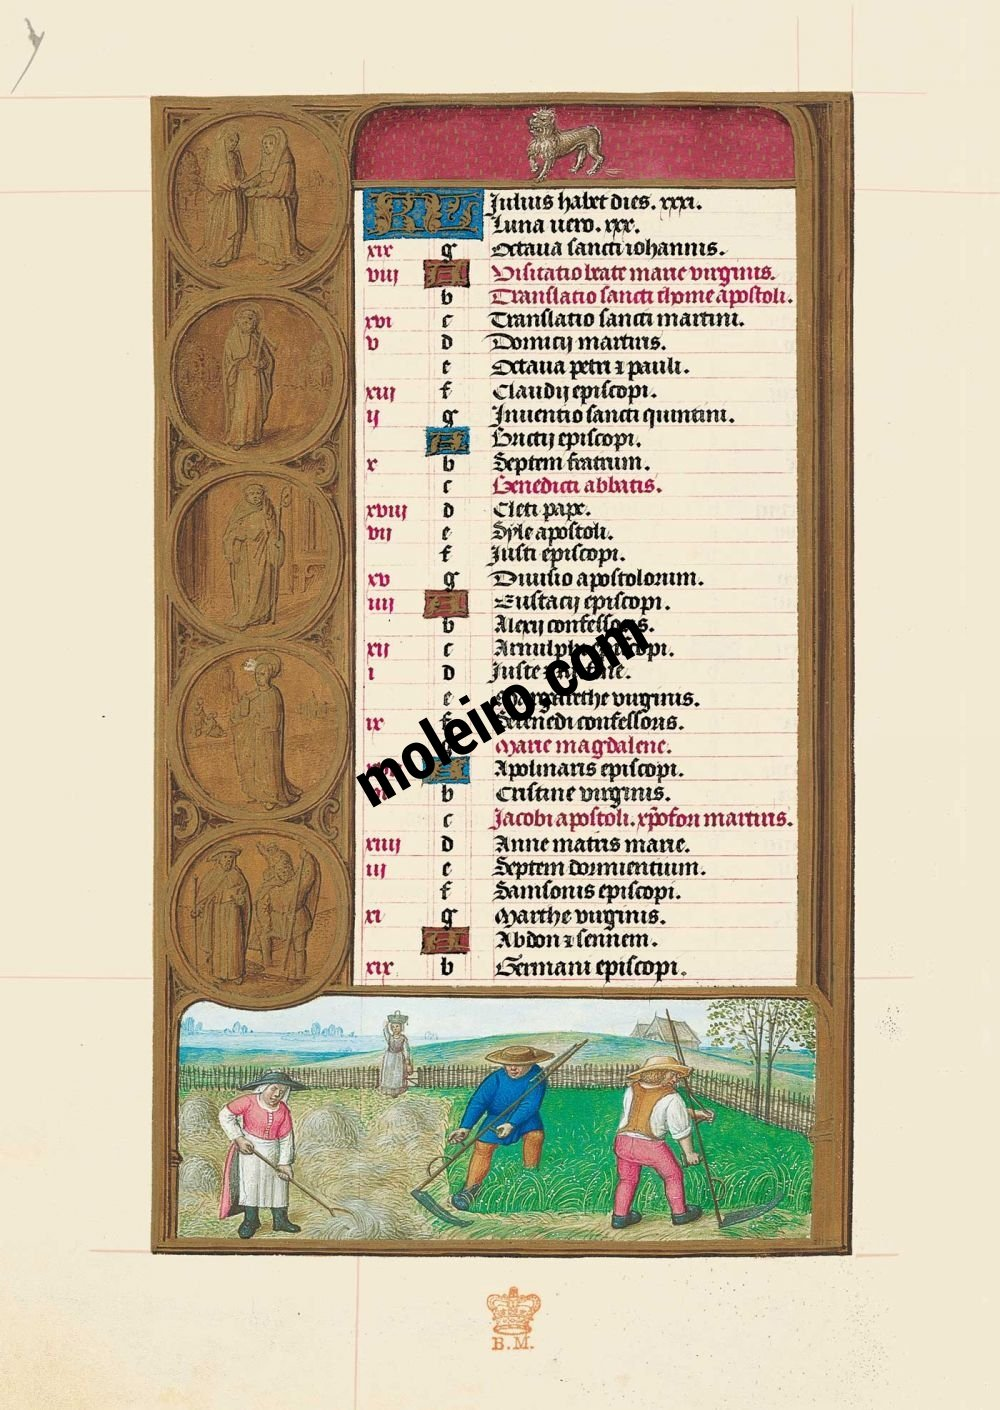 The Hours of Joanna I of Castile, Joanna the Mad (The London Rothschild Prayerbook) f. 4v, Calendar, July